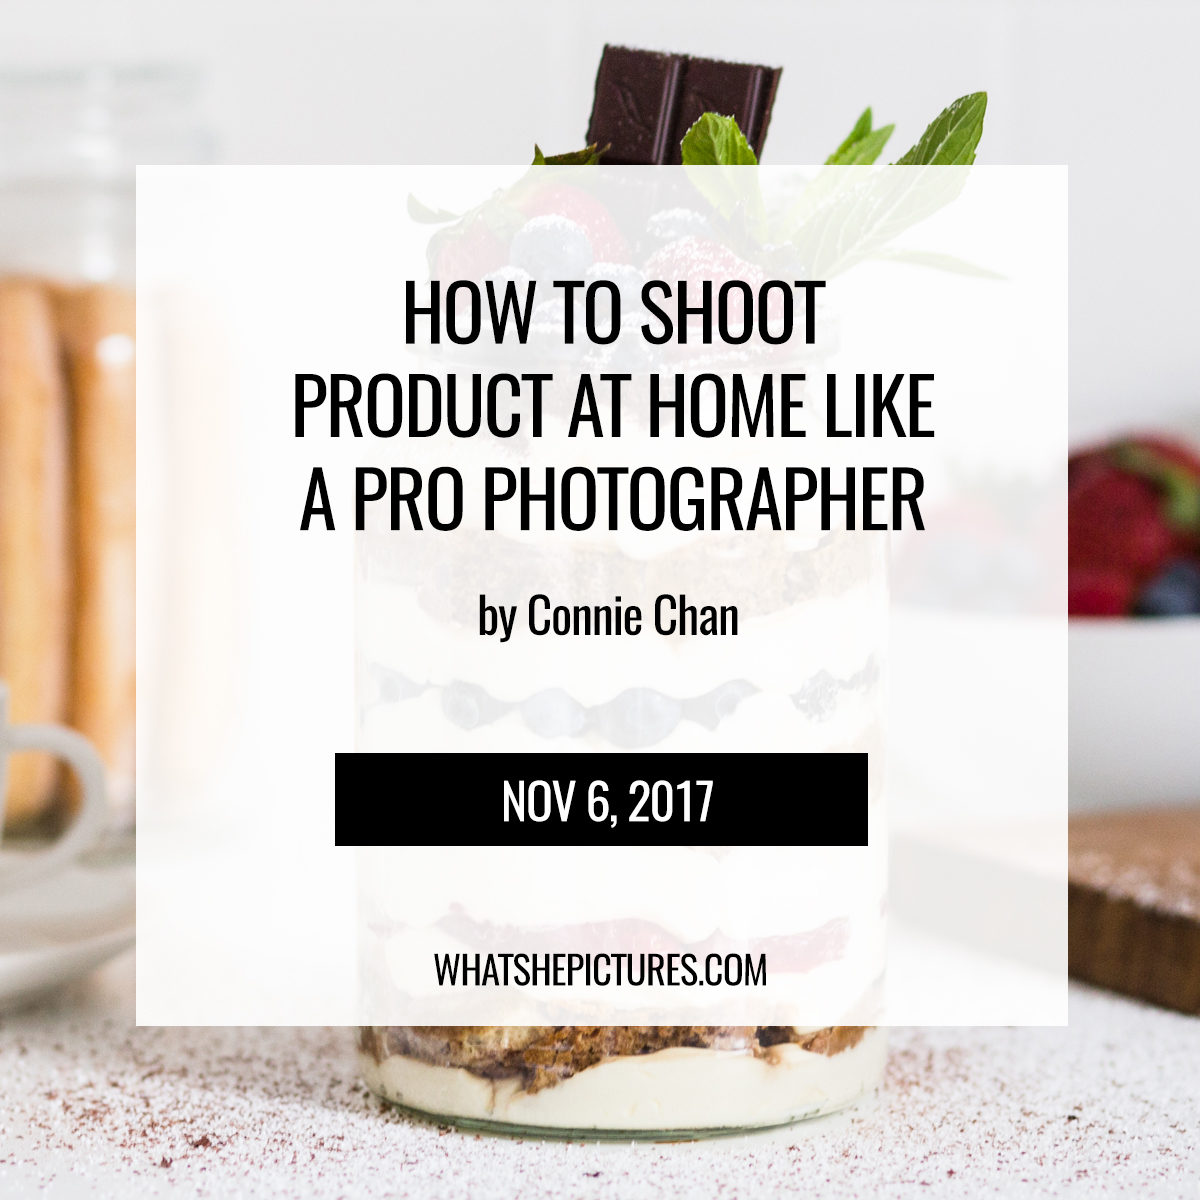 Product Photography Tips: Shoot Product At Home Like A Pro Photographer